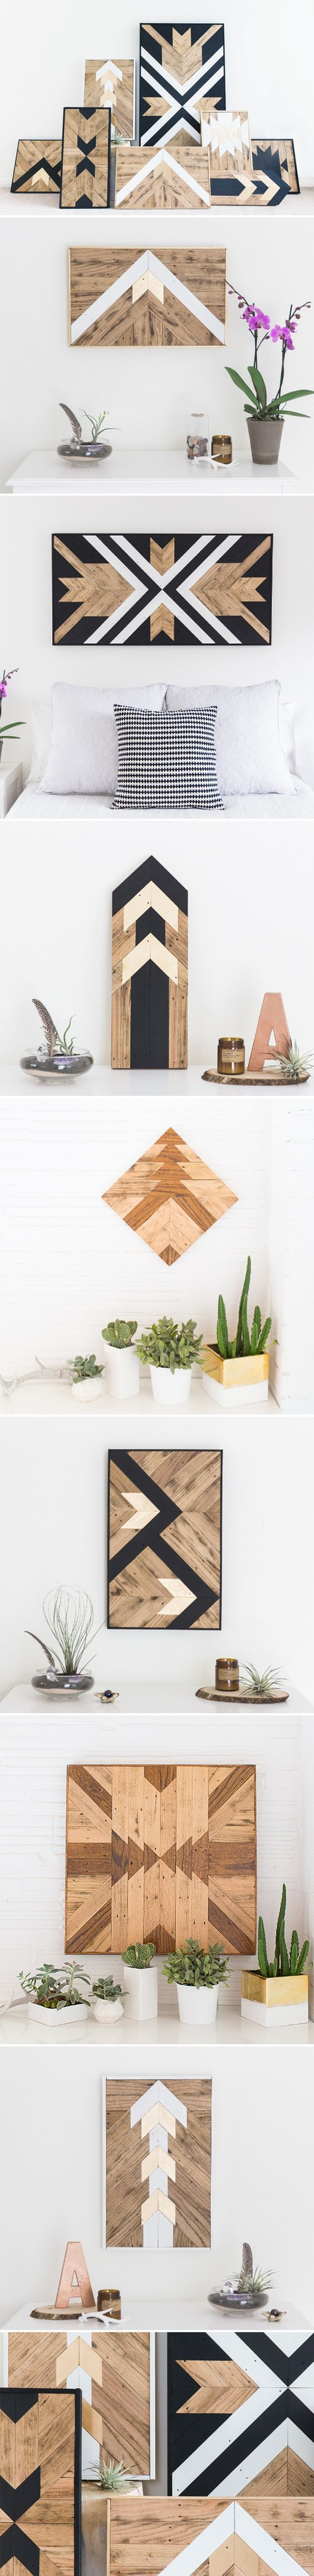 Best 100+ DIY Ideas For Your Home | DIY ideas, Craft and Pallets